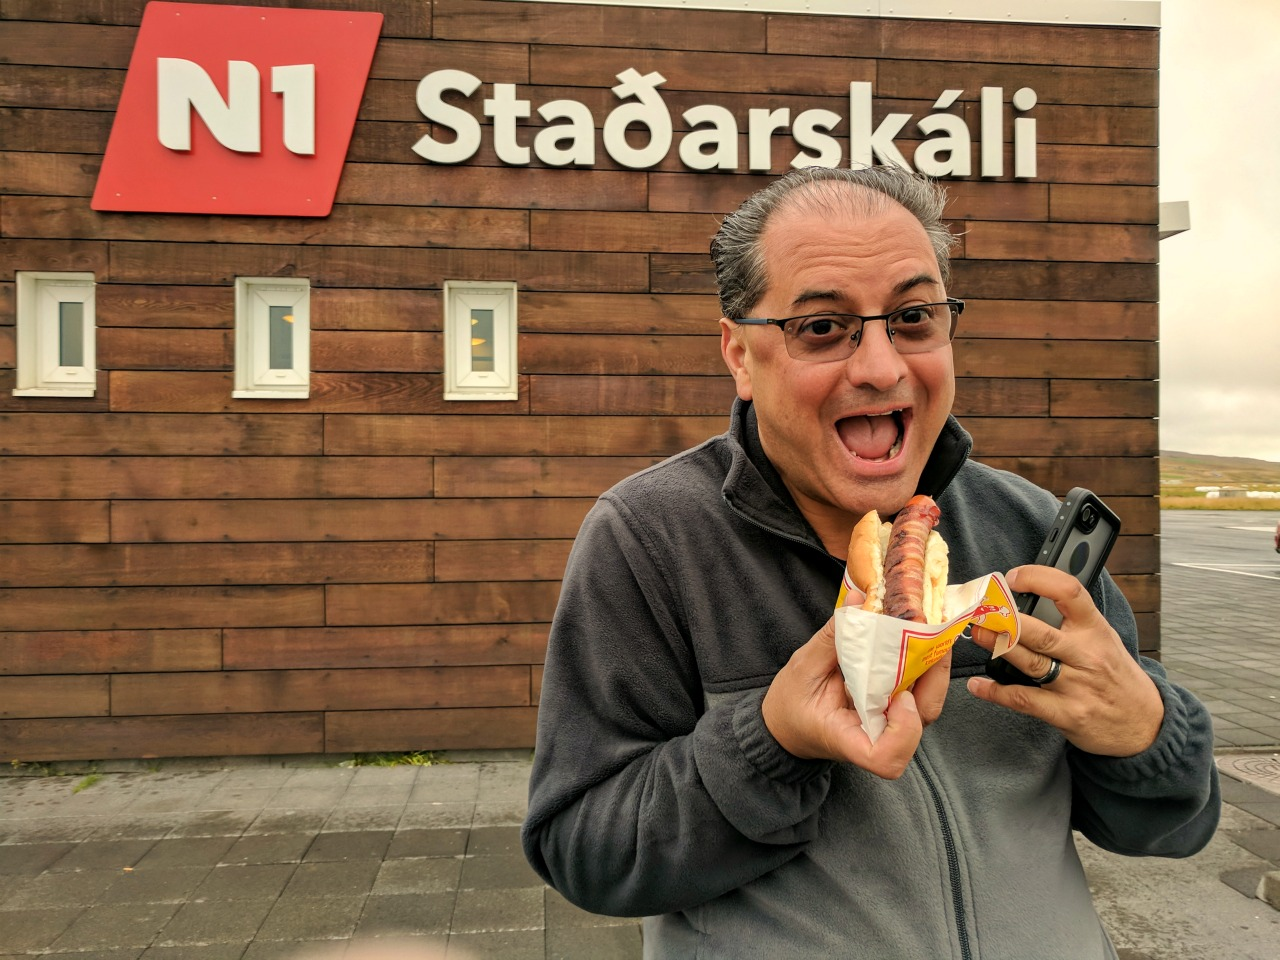 10 top reasons to visit Iceland. You must try Icelandic famous hot dog!